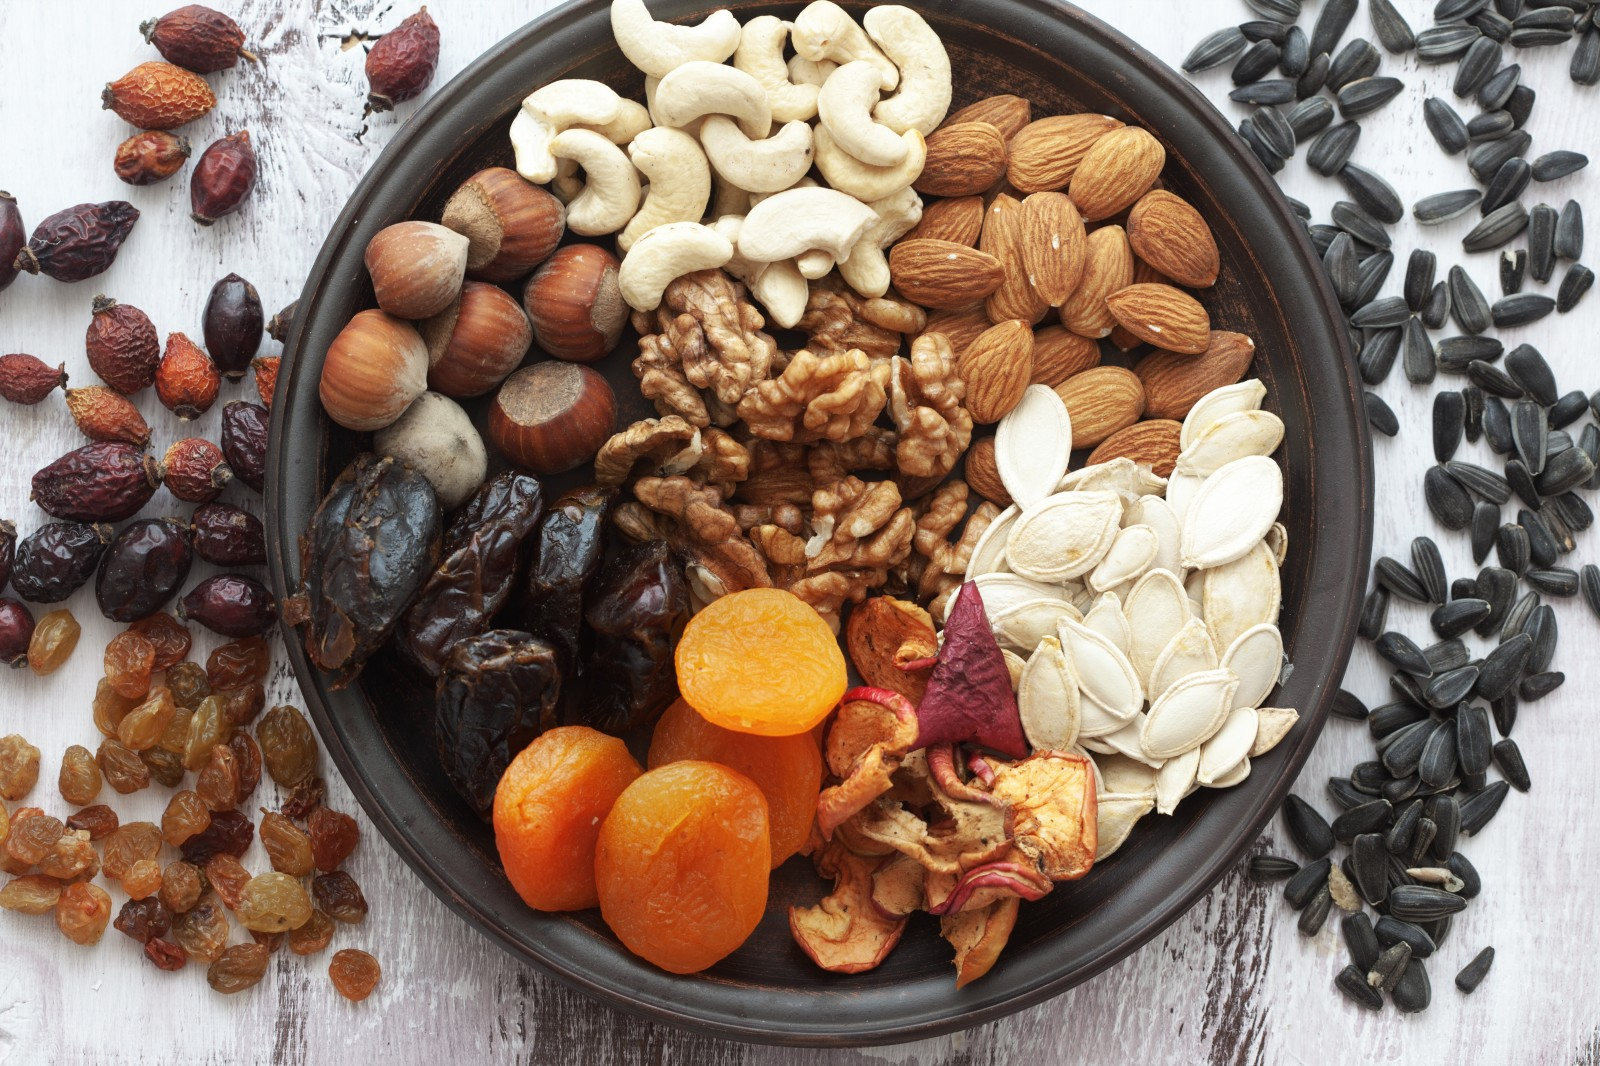 Dry fruits wallpaper - Nuts And Dried Fruits